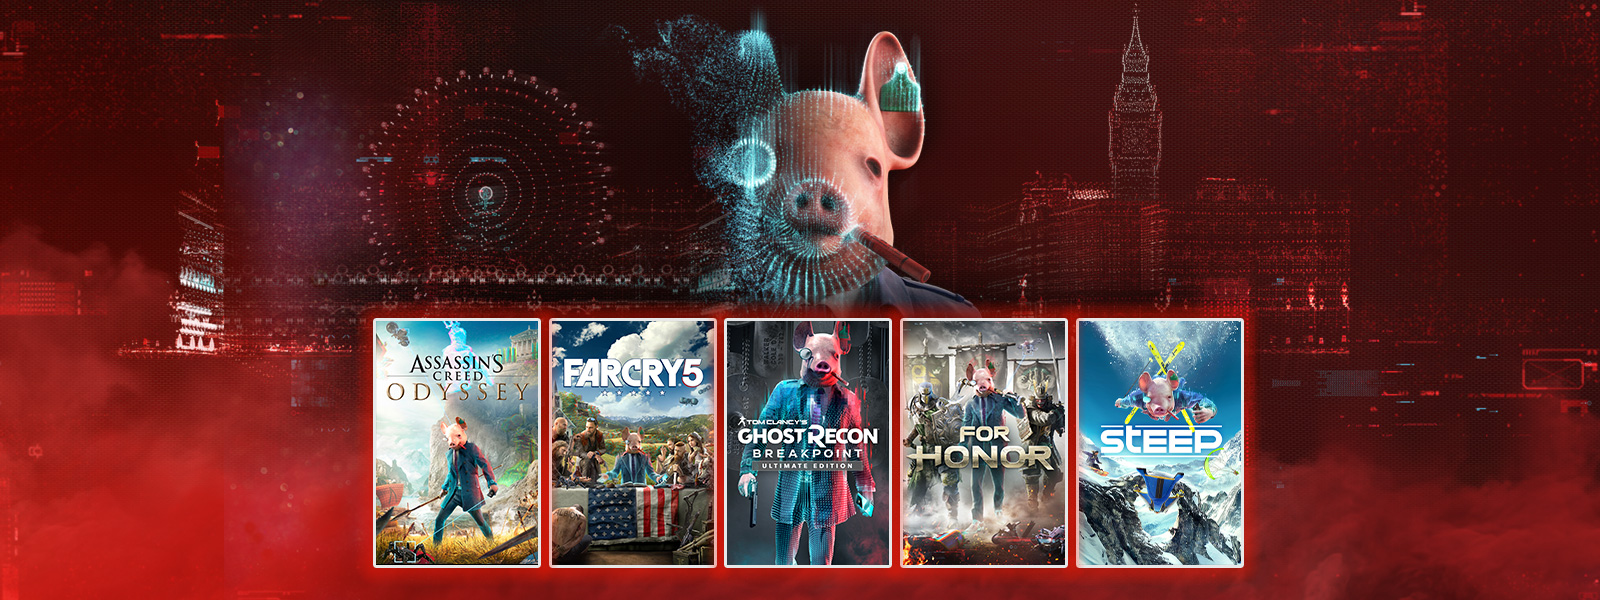 A collection of games that are part of the Watch Dogs: Legion Hack sale, including Assassin's Creed Odyssey, Far Cry 5 and Steep.